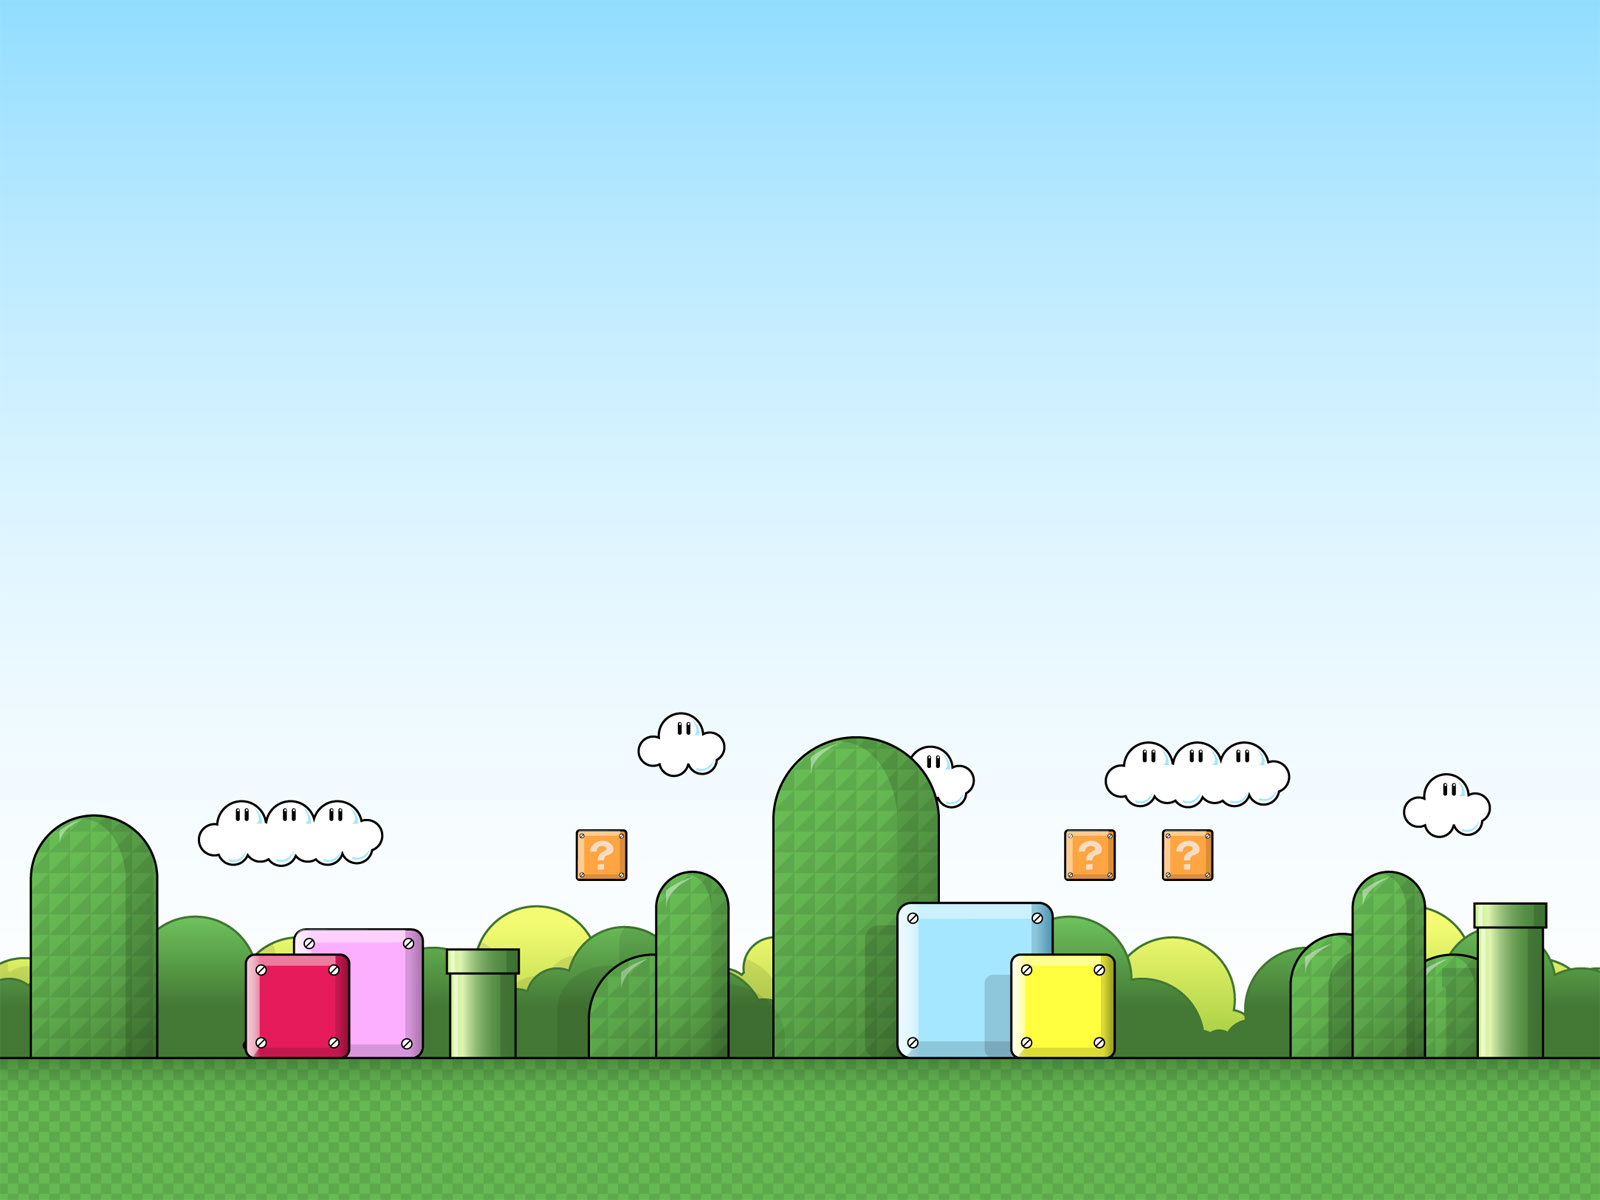 Super Mario Brothers Wallpapers. Mario Land